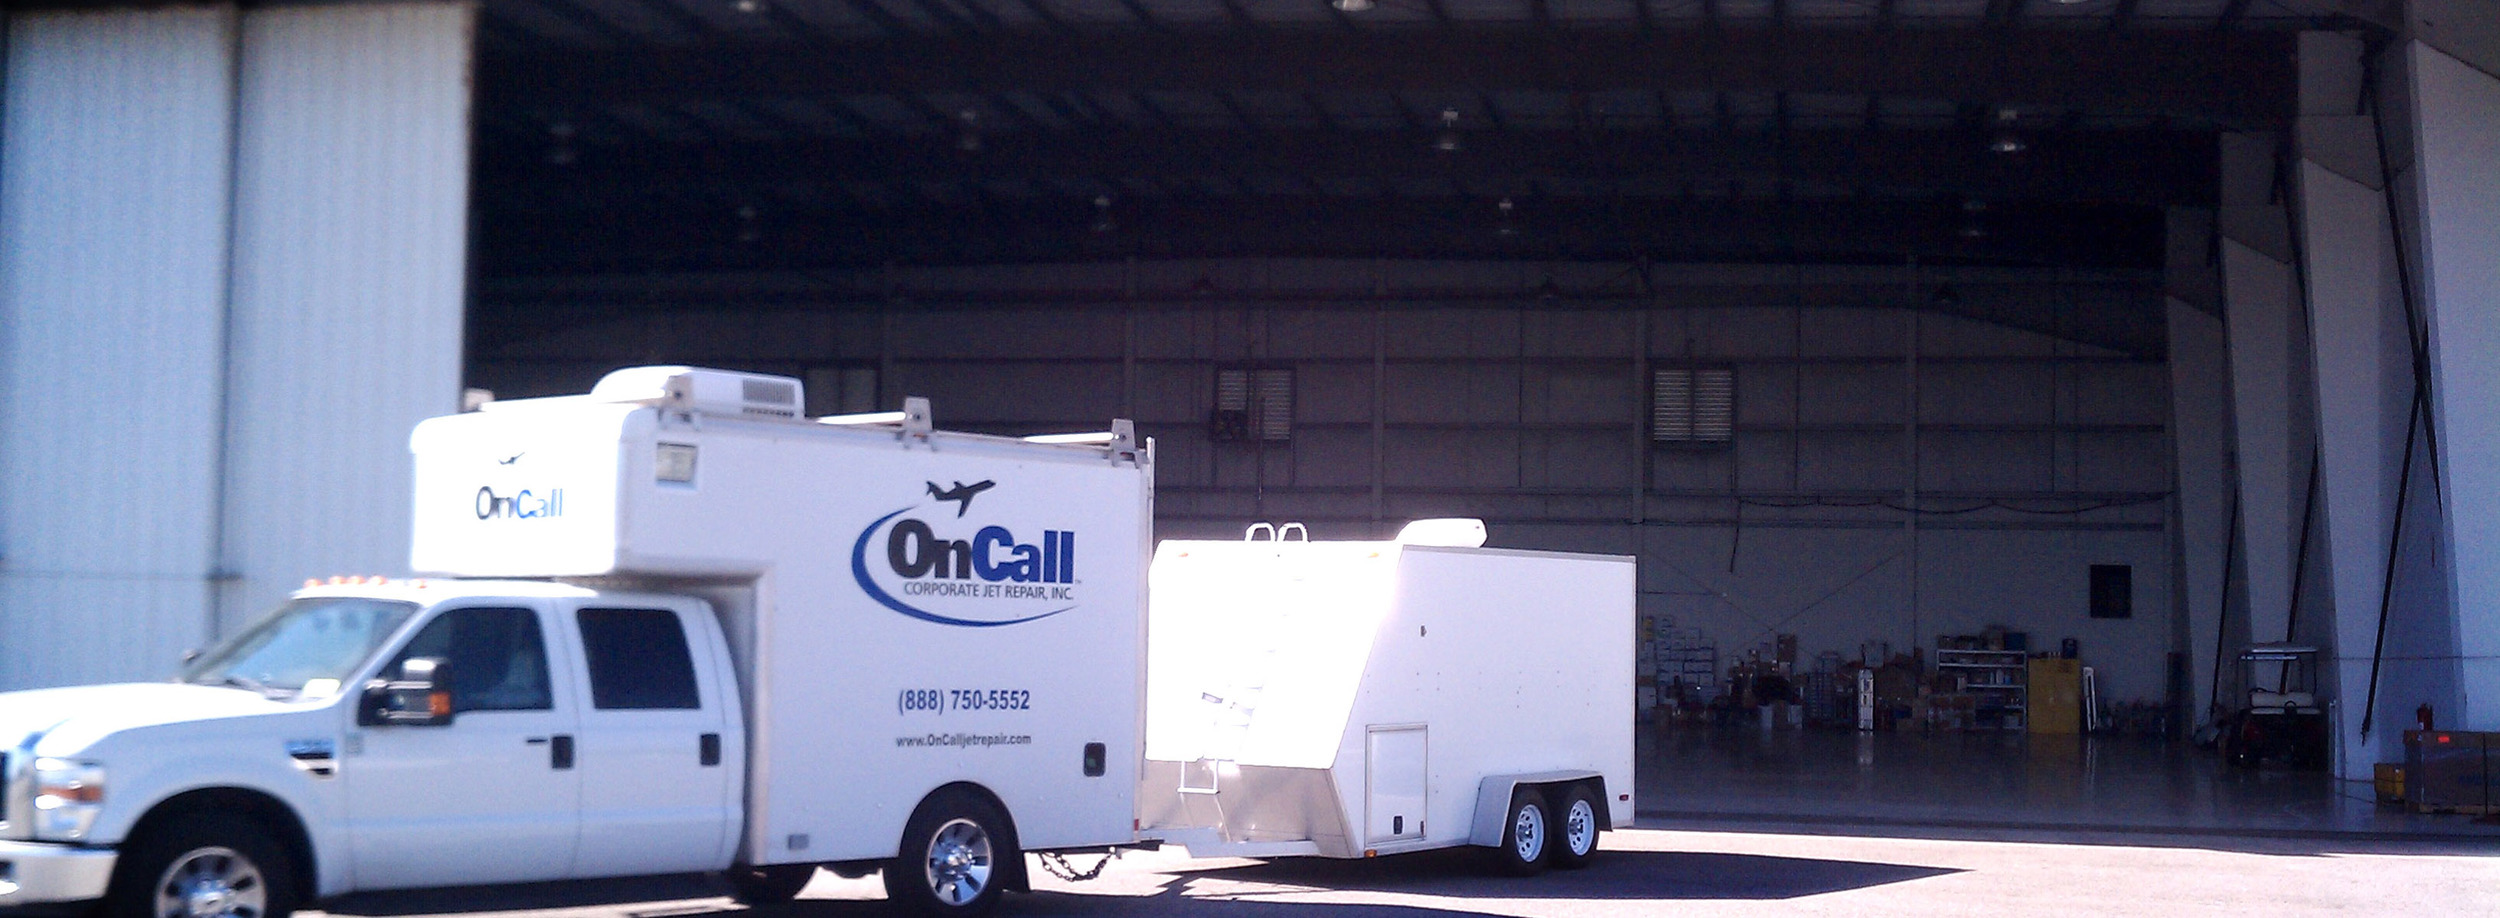 OnCallCorporateJetRepair-Truck-Hangar.jpg